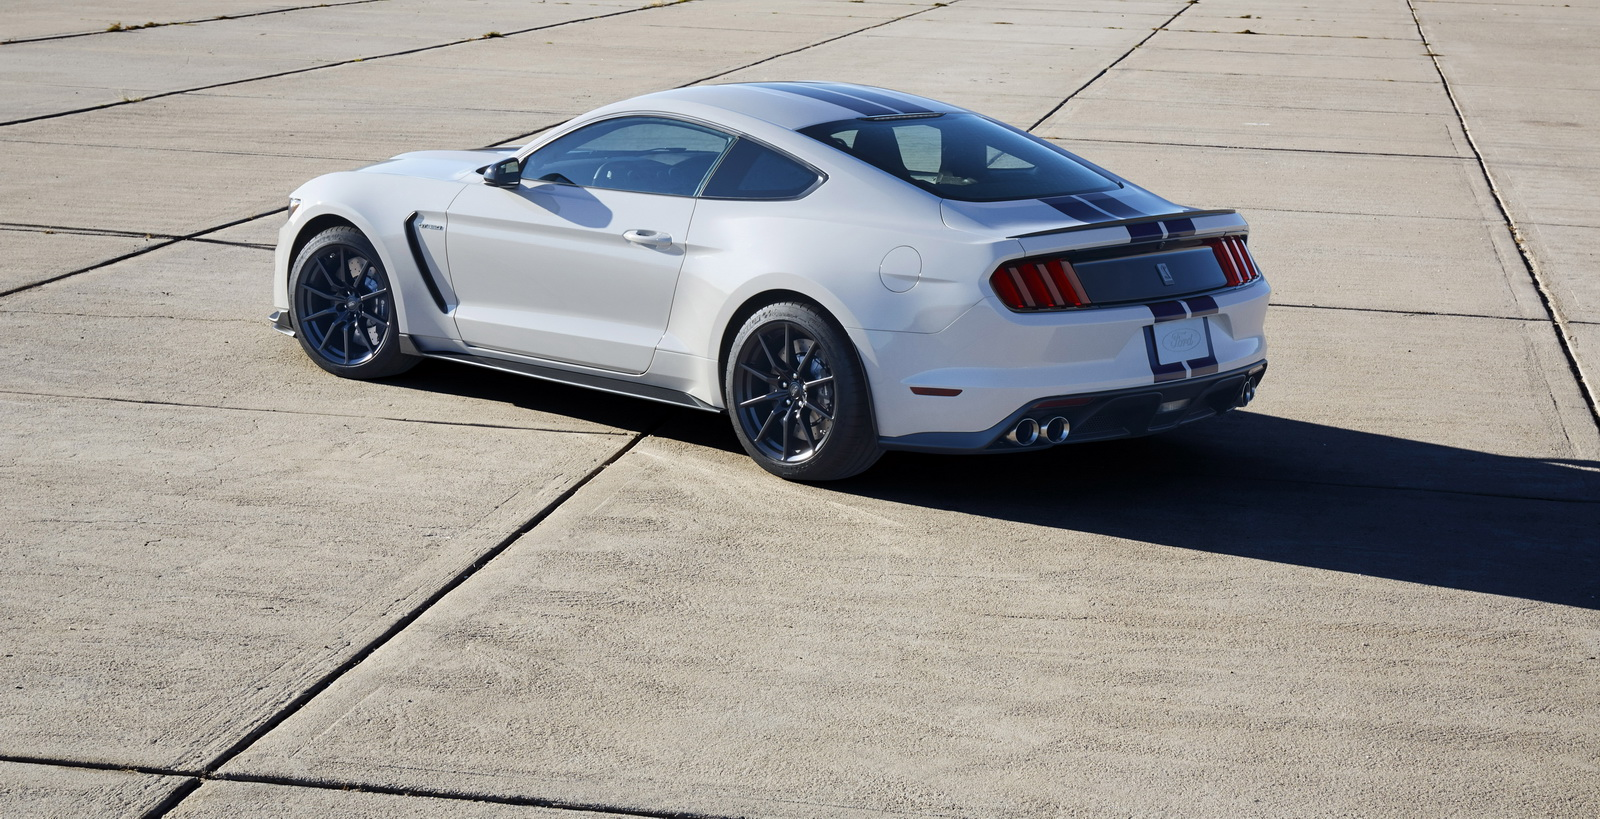 2017 ford shelby mustang gt350 gets lots of upgrades carscoops. Black Bedroom Furniture Sets. Home Design Ideas